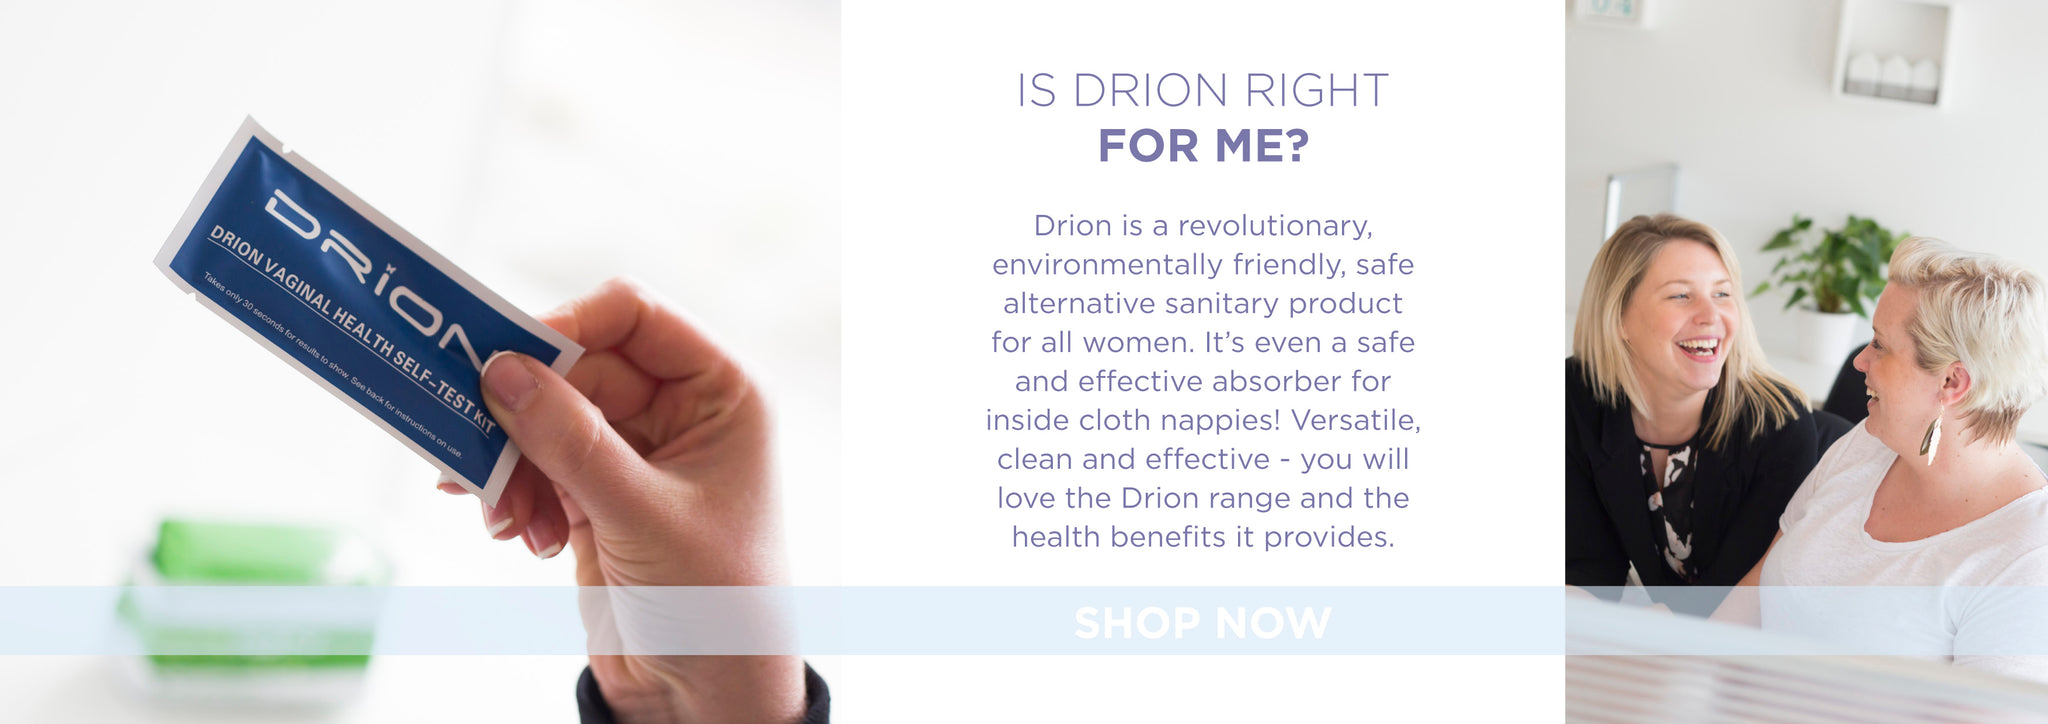 Is Drion Right For Me?